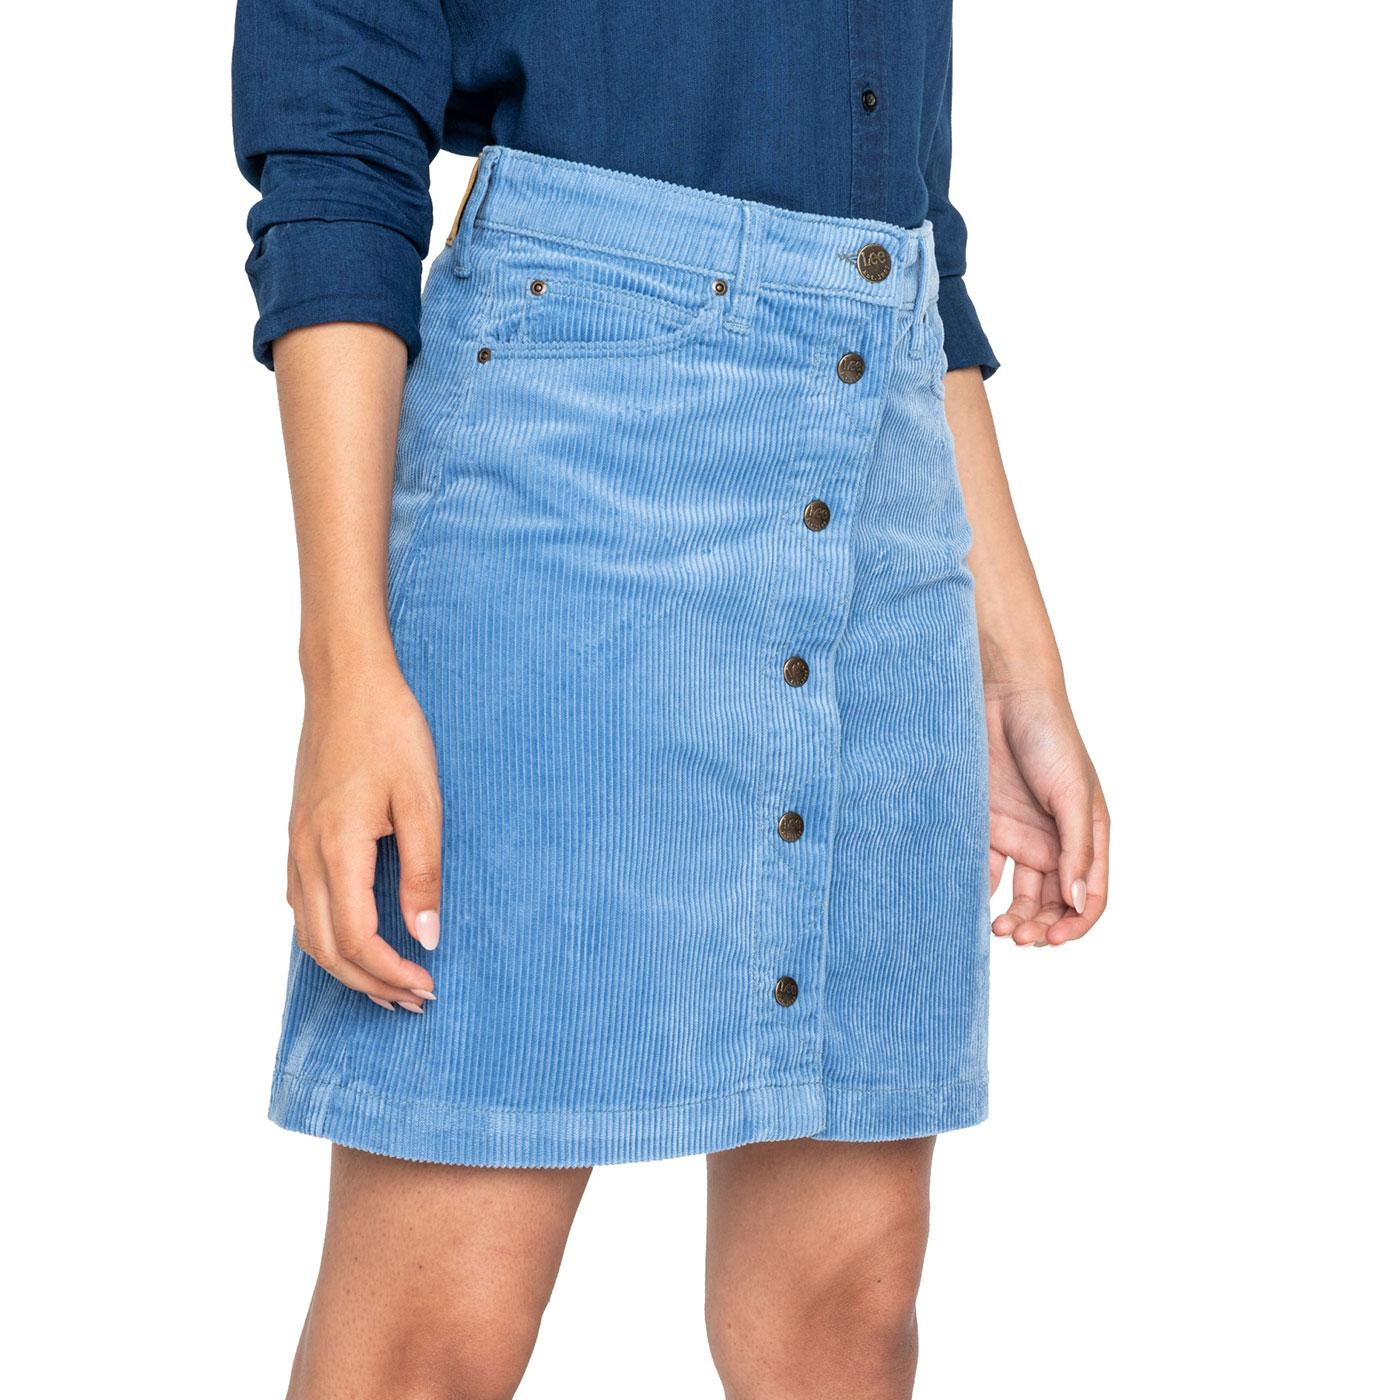 LEE JEANS Womens Retro Cord A-Line Mini Skirt (FB)